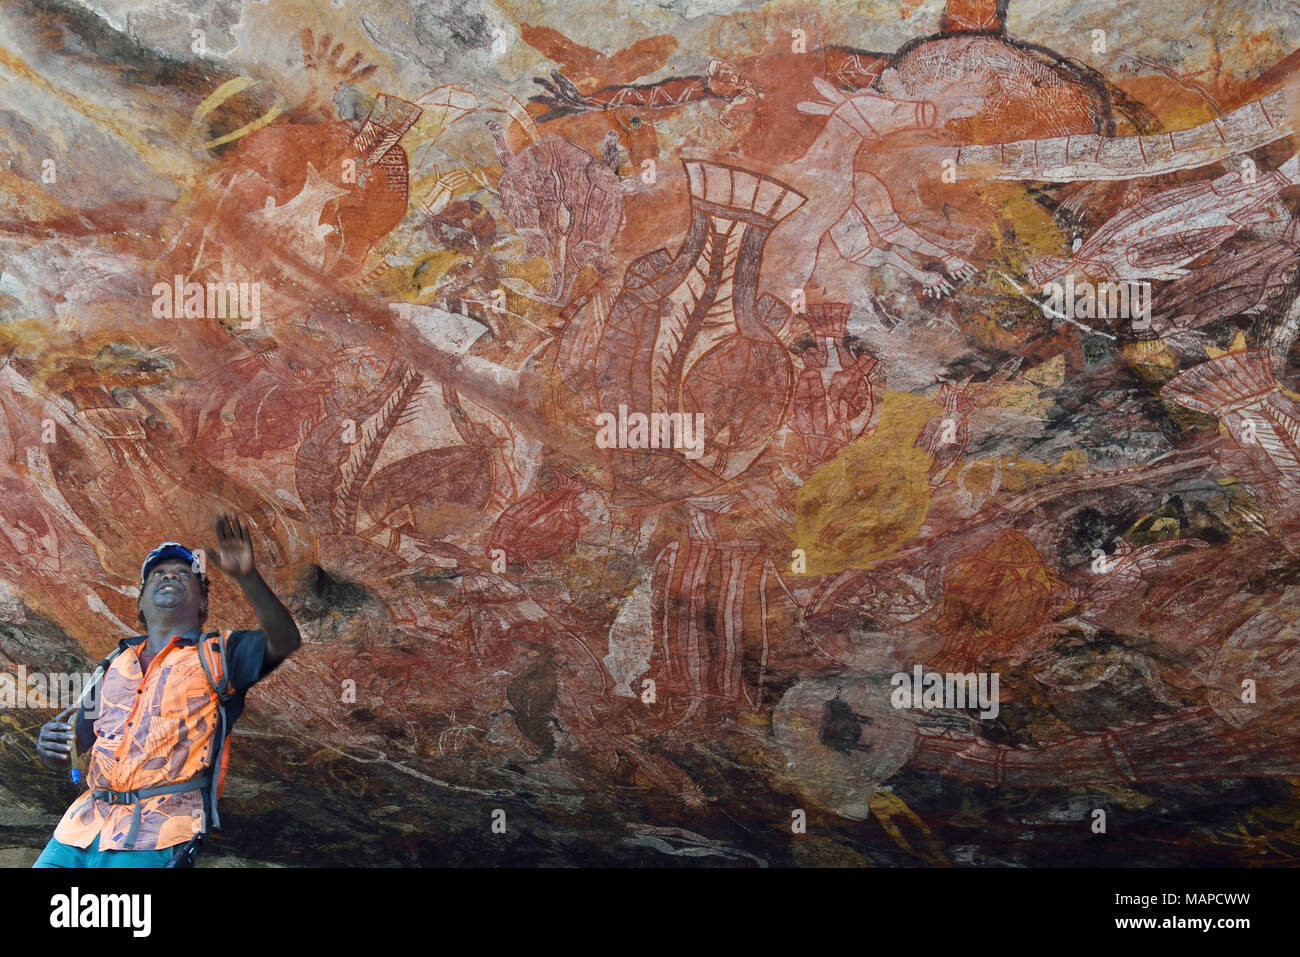 Roland, an  aboriginal  guide  local from the Gunbalanya community shows  the extensive  Rock Art  in the  towering escarpment Injalak Hill. - Stock Image